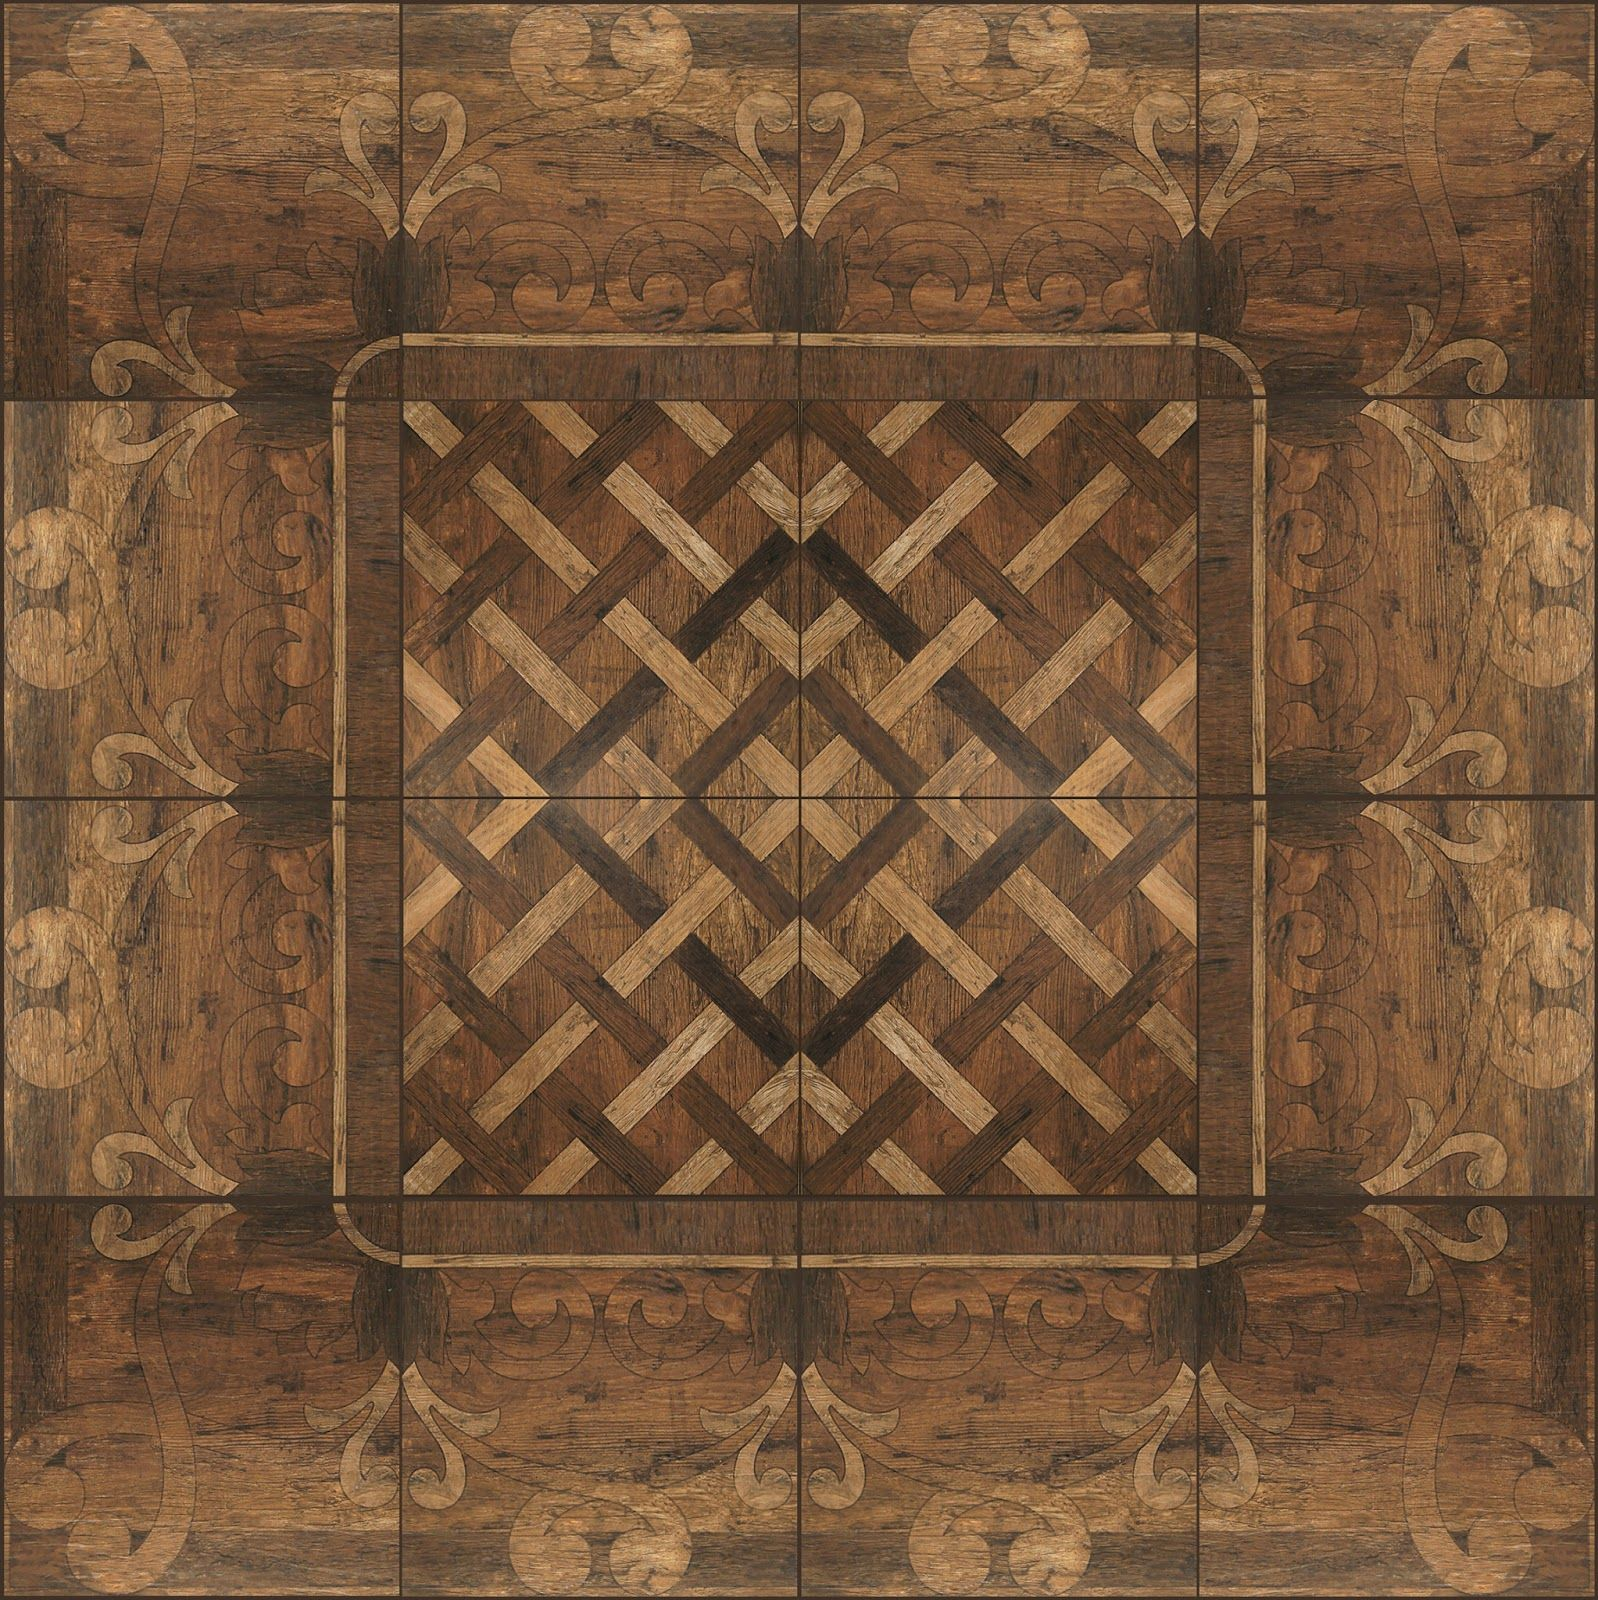 Ceramic tile patterns sketchup texture update new wood ceramic ceramic tile patterns sketchup texture update new wood ceramic floor tiles dailygadgetfo Gallery